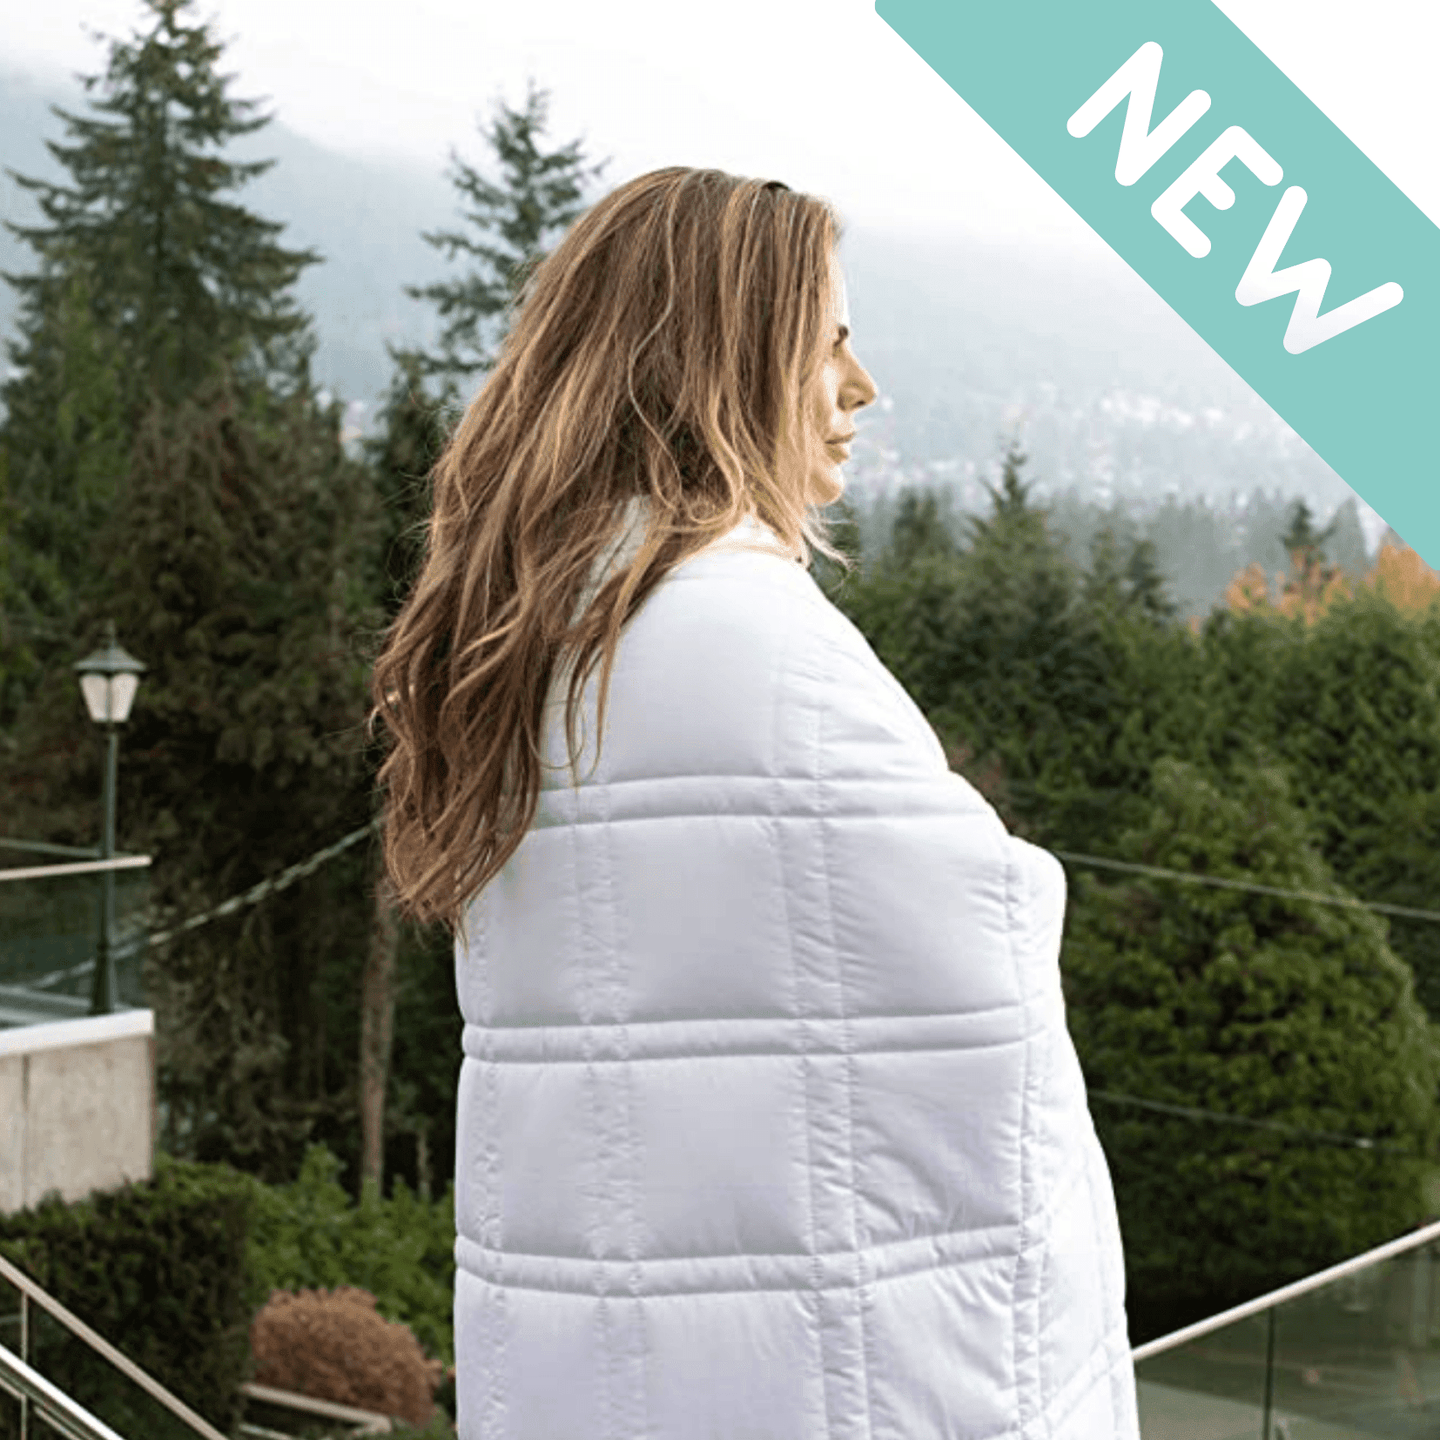 BETTER SLEEP PREMIUM - BETTER SLEEP - Canada's Premium Weighted Blanket